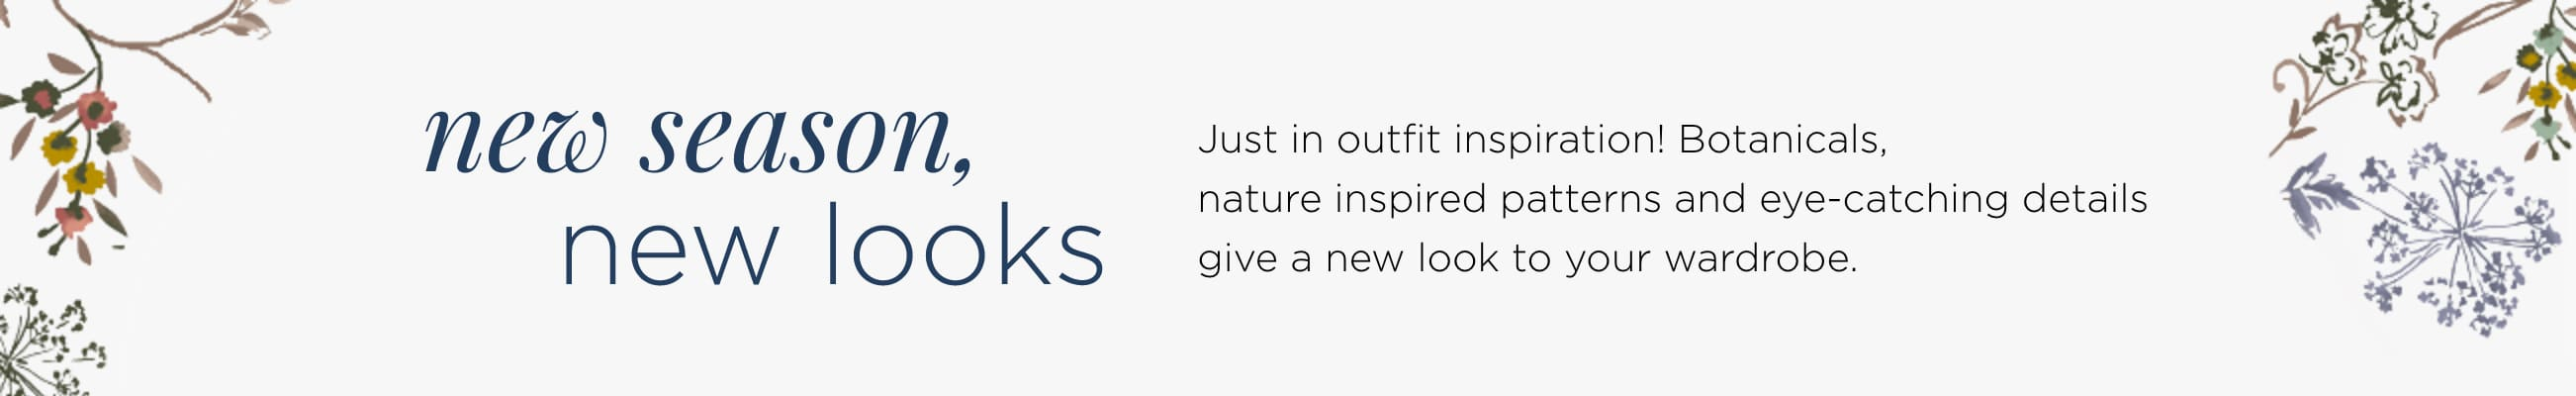 New Season, New Looks. Just-in outfit inspiration! Botanicals, nature-inspired patterns, and eye-catching details give a new look to your wardrobe.